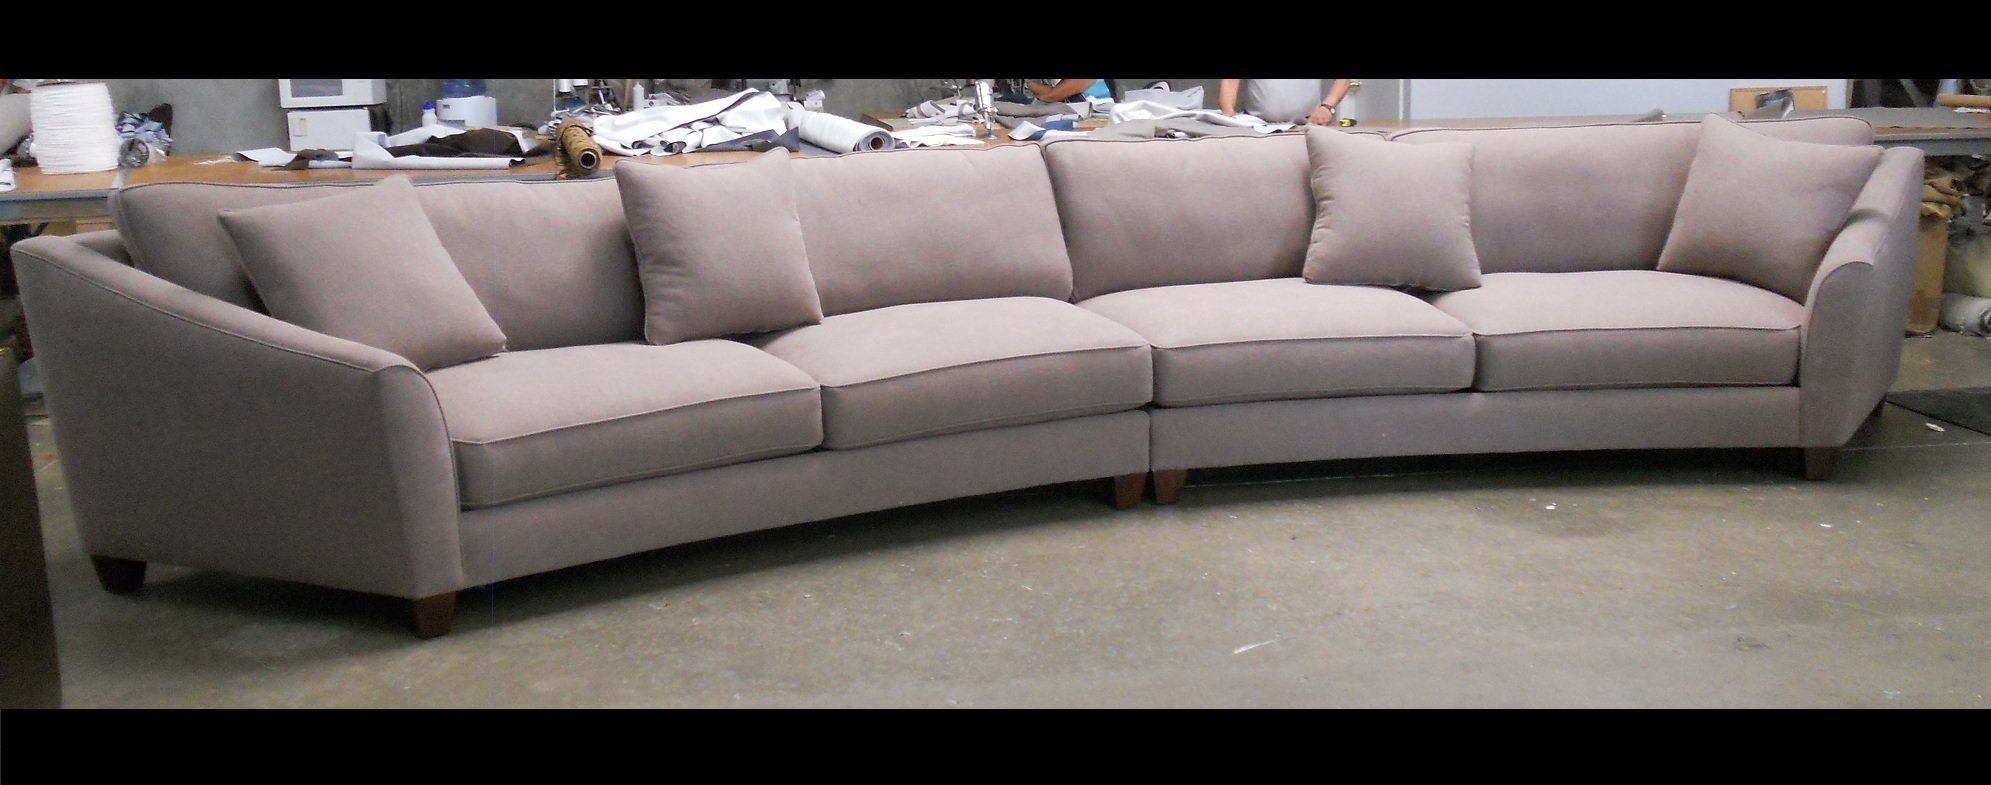 Curved Sectional Sofa Set Rich Comfortable Upholstered Fabric With Contemporary Curved Sofas (Image 5 of 15)